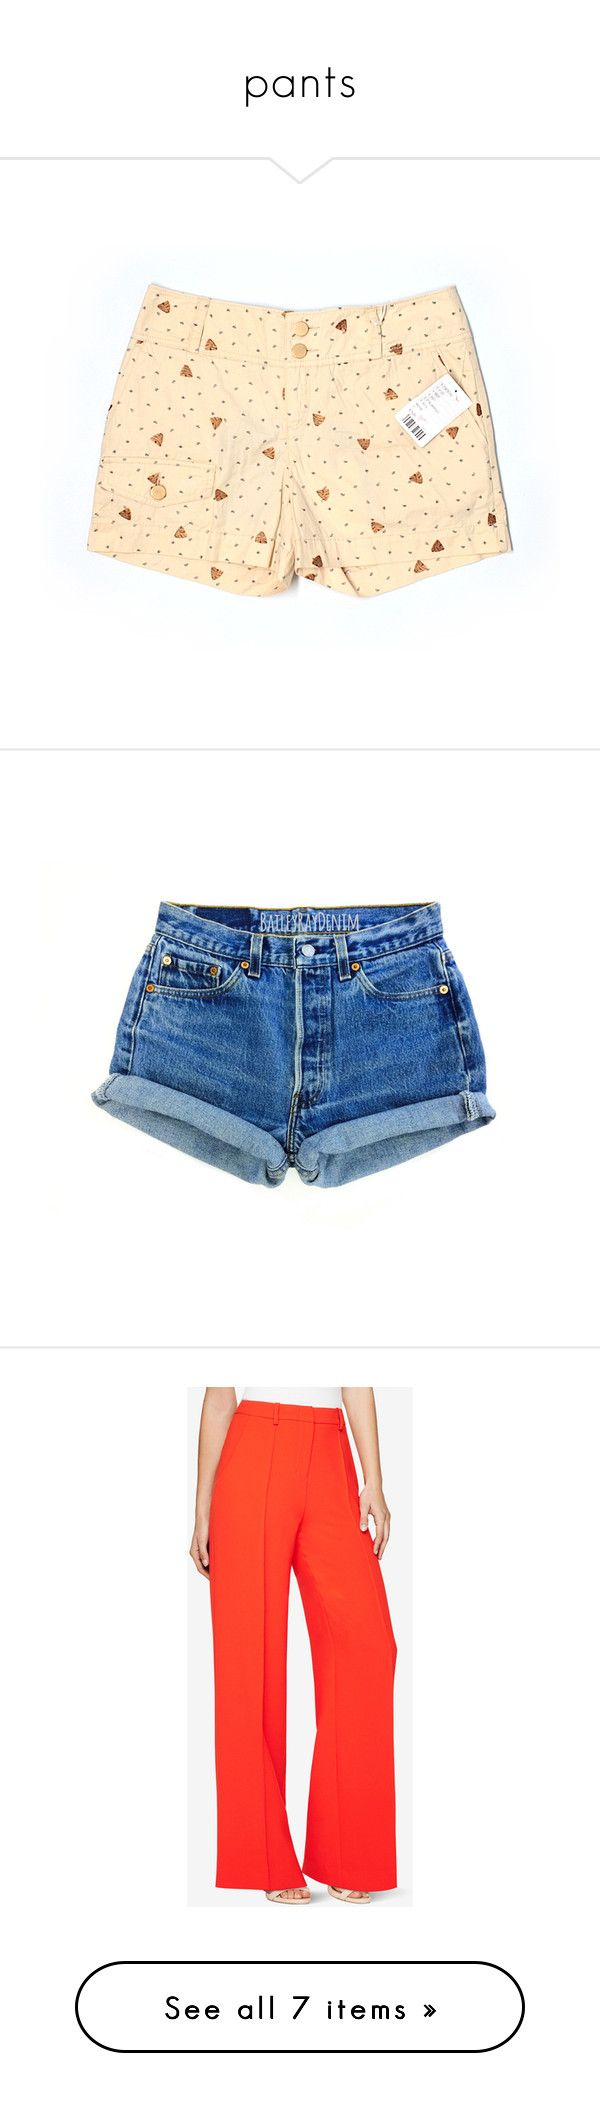 """""""pants"""" by lanalight ❤ liked on Polyvore featuring shorts, yellow, daughters of the liberation, yellow shorts, bottoms, short, black, women's clothing, high waisted ripped shorts and high waisted denim shorts"""